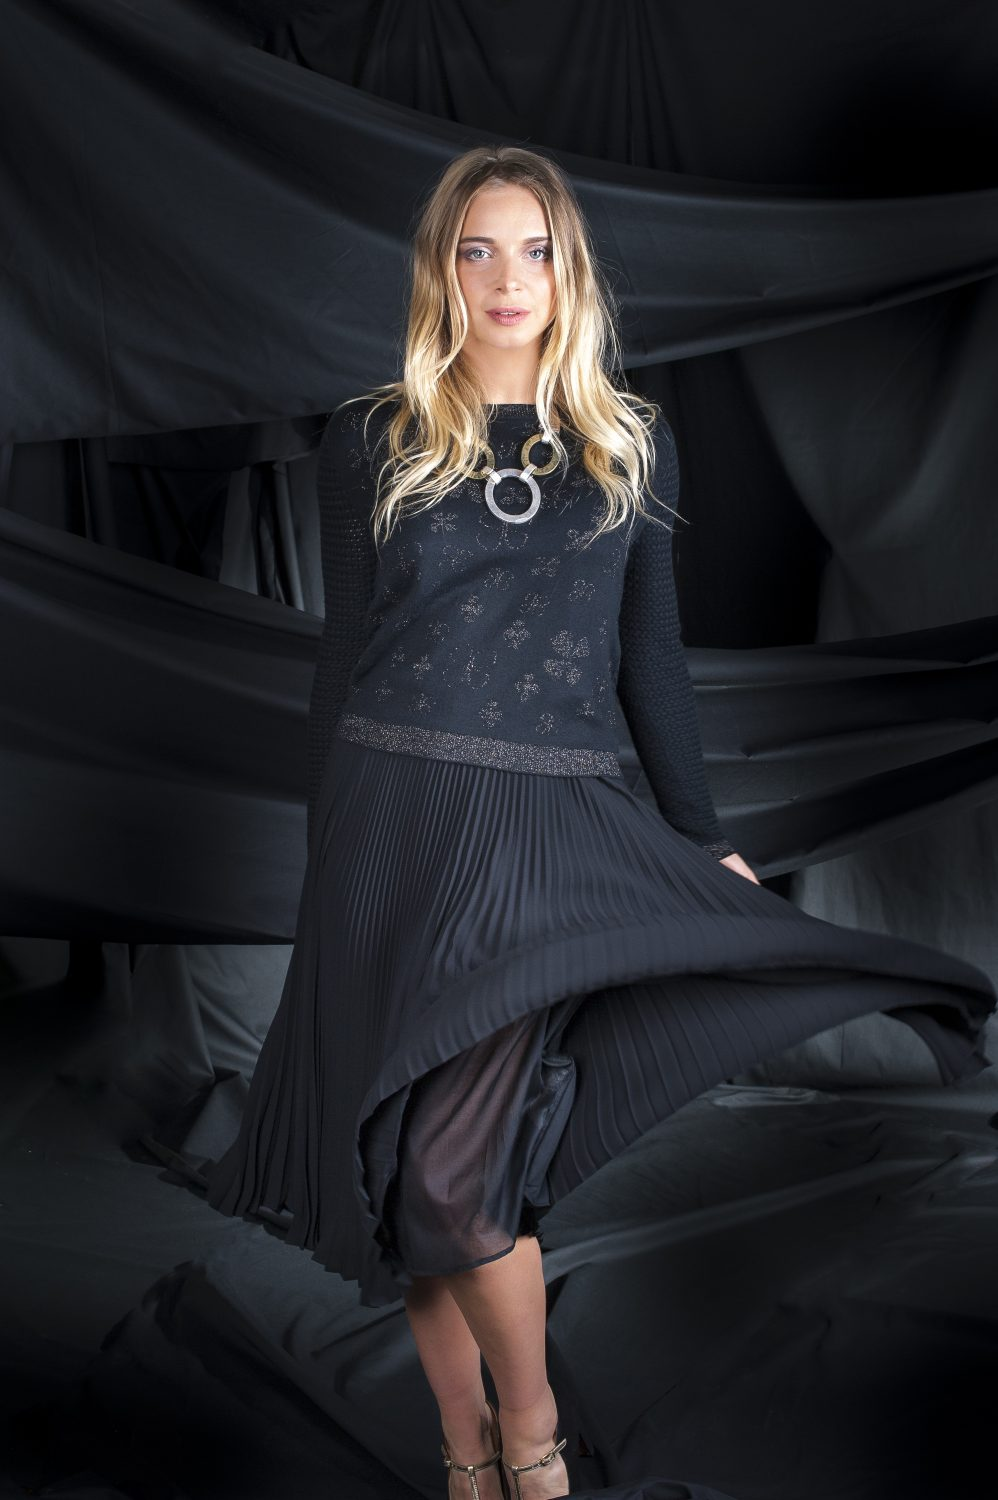 Penny Black pleated skirt, £169, sweater, £125, Niche, Rye, niche-online.co.uk 01797 225 294; Chie Mihara shoes, £253 Golden Boot thegoldenboot.co.uk 01622 752349; necklace, £25, Who's Wearing What Boutique, St Leonards whoswearingwhat-boutique.co.uk 01424 272925